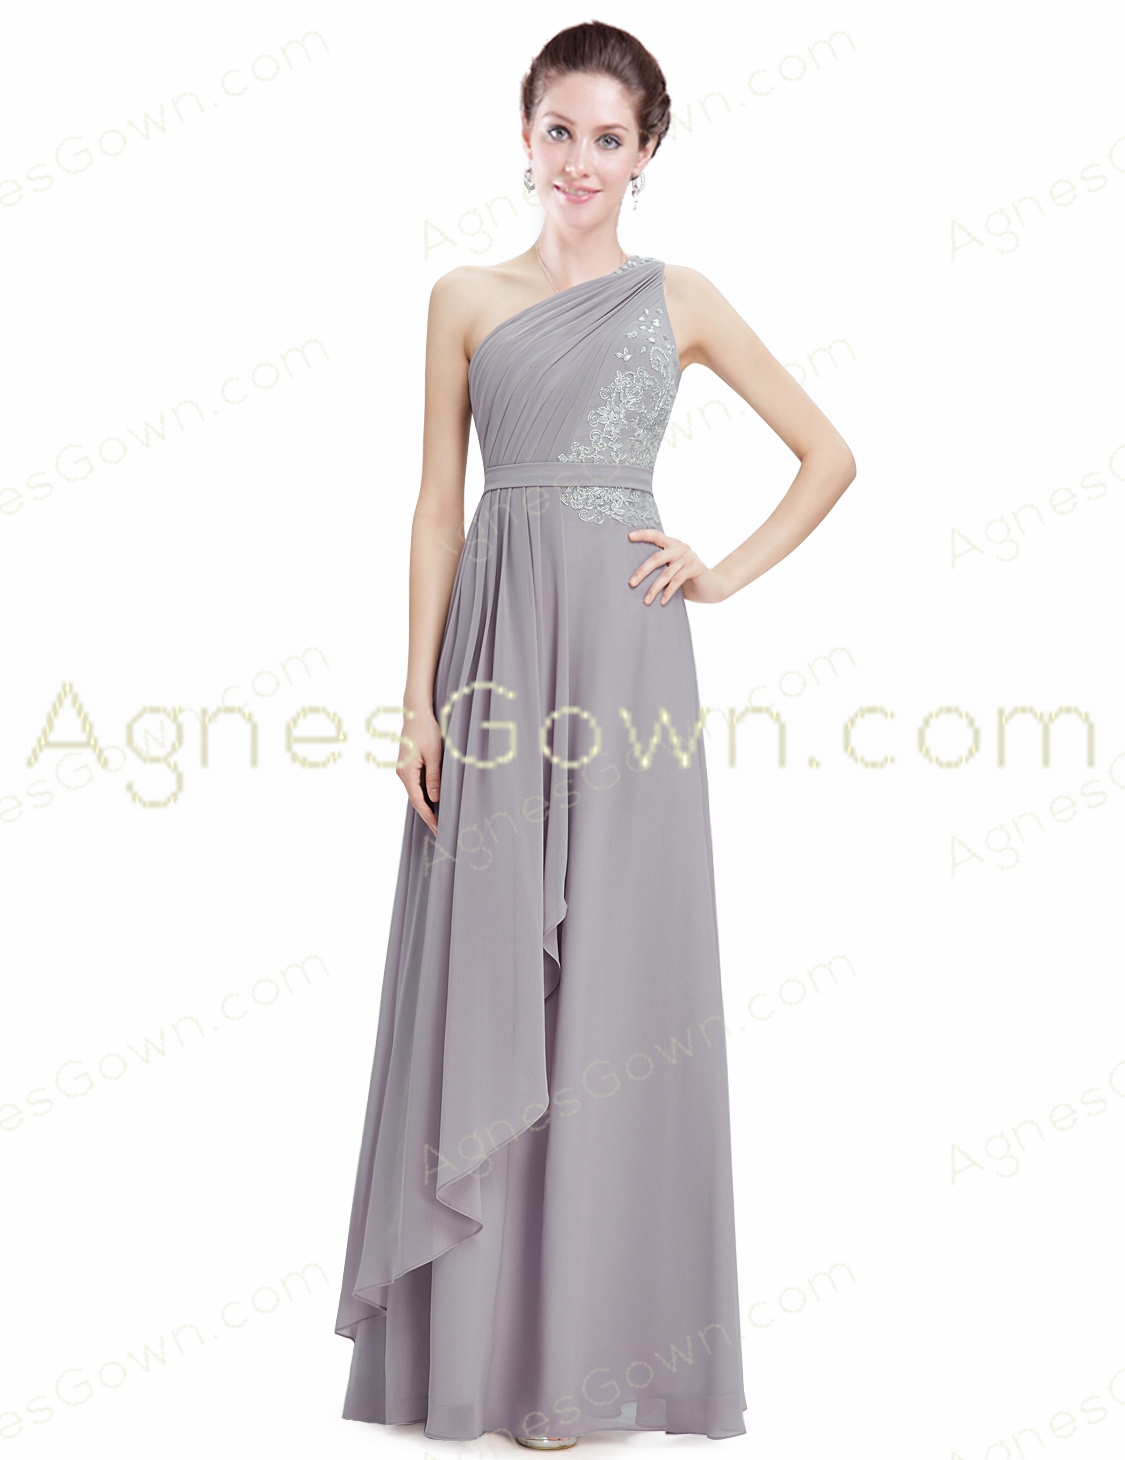 Noble One Shoulder Silver Gray Chiffon Bridesmaid Dress With Lace